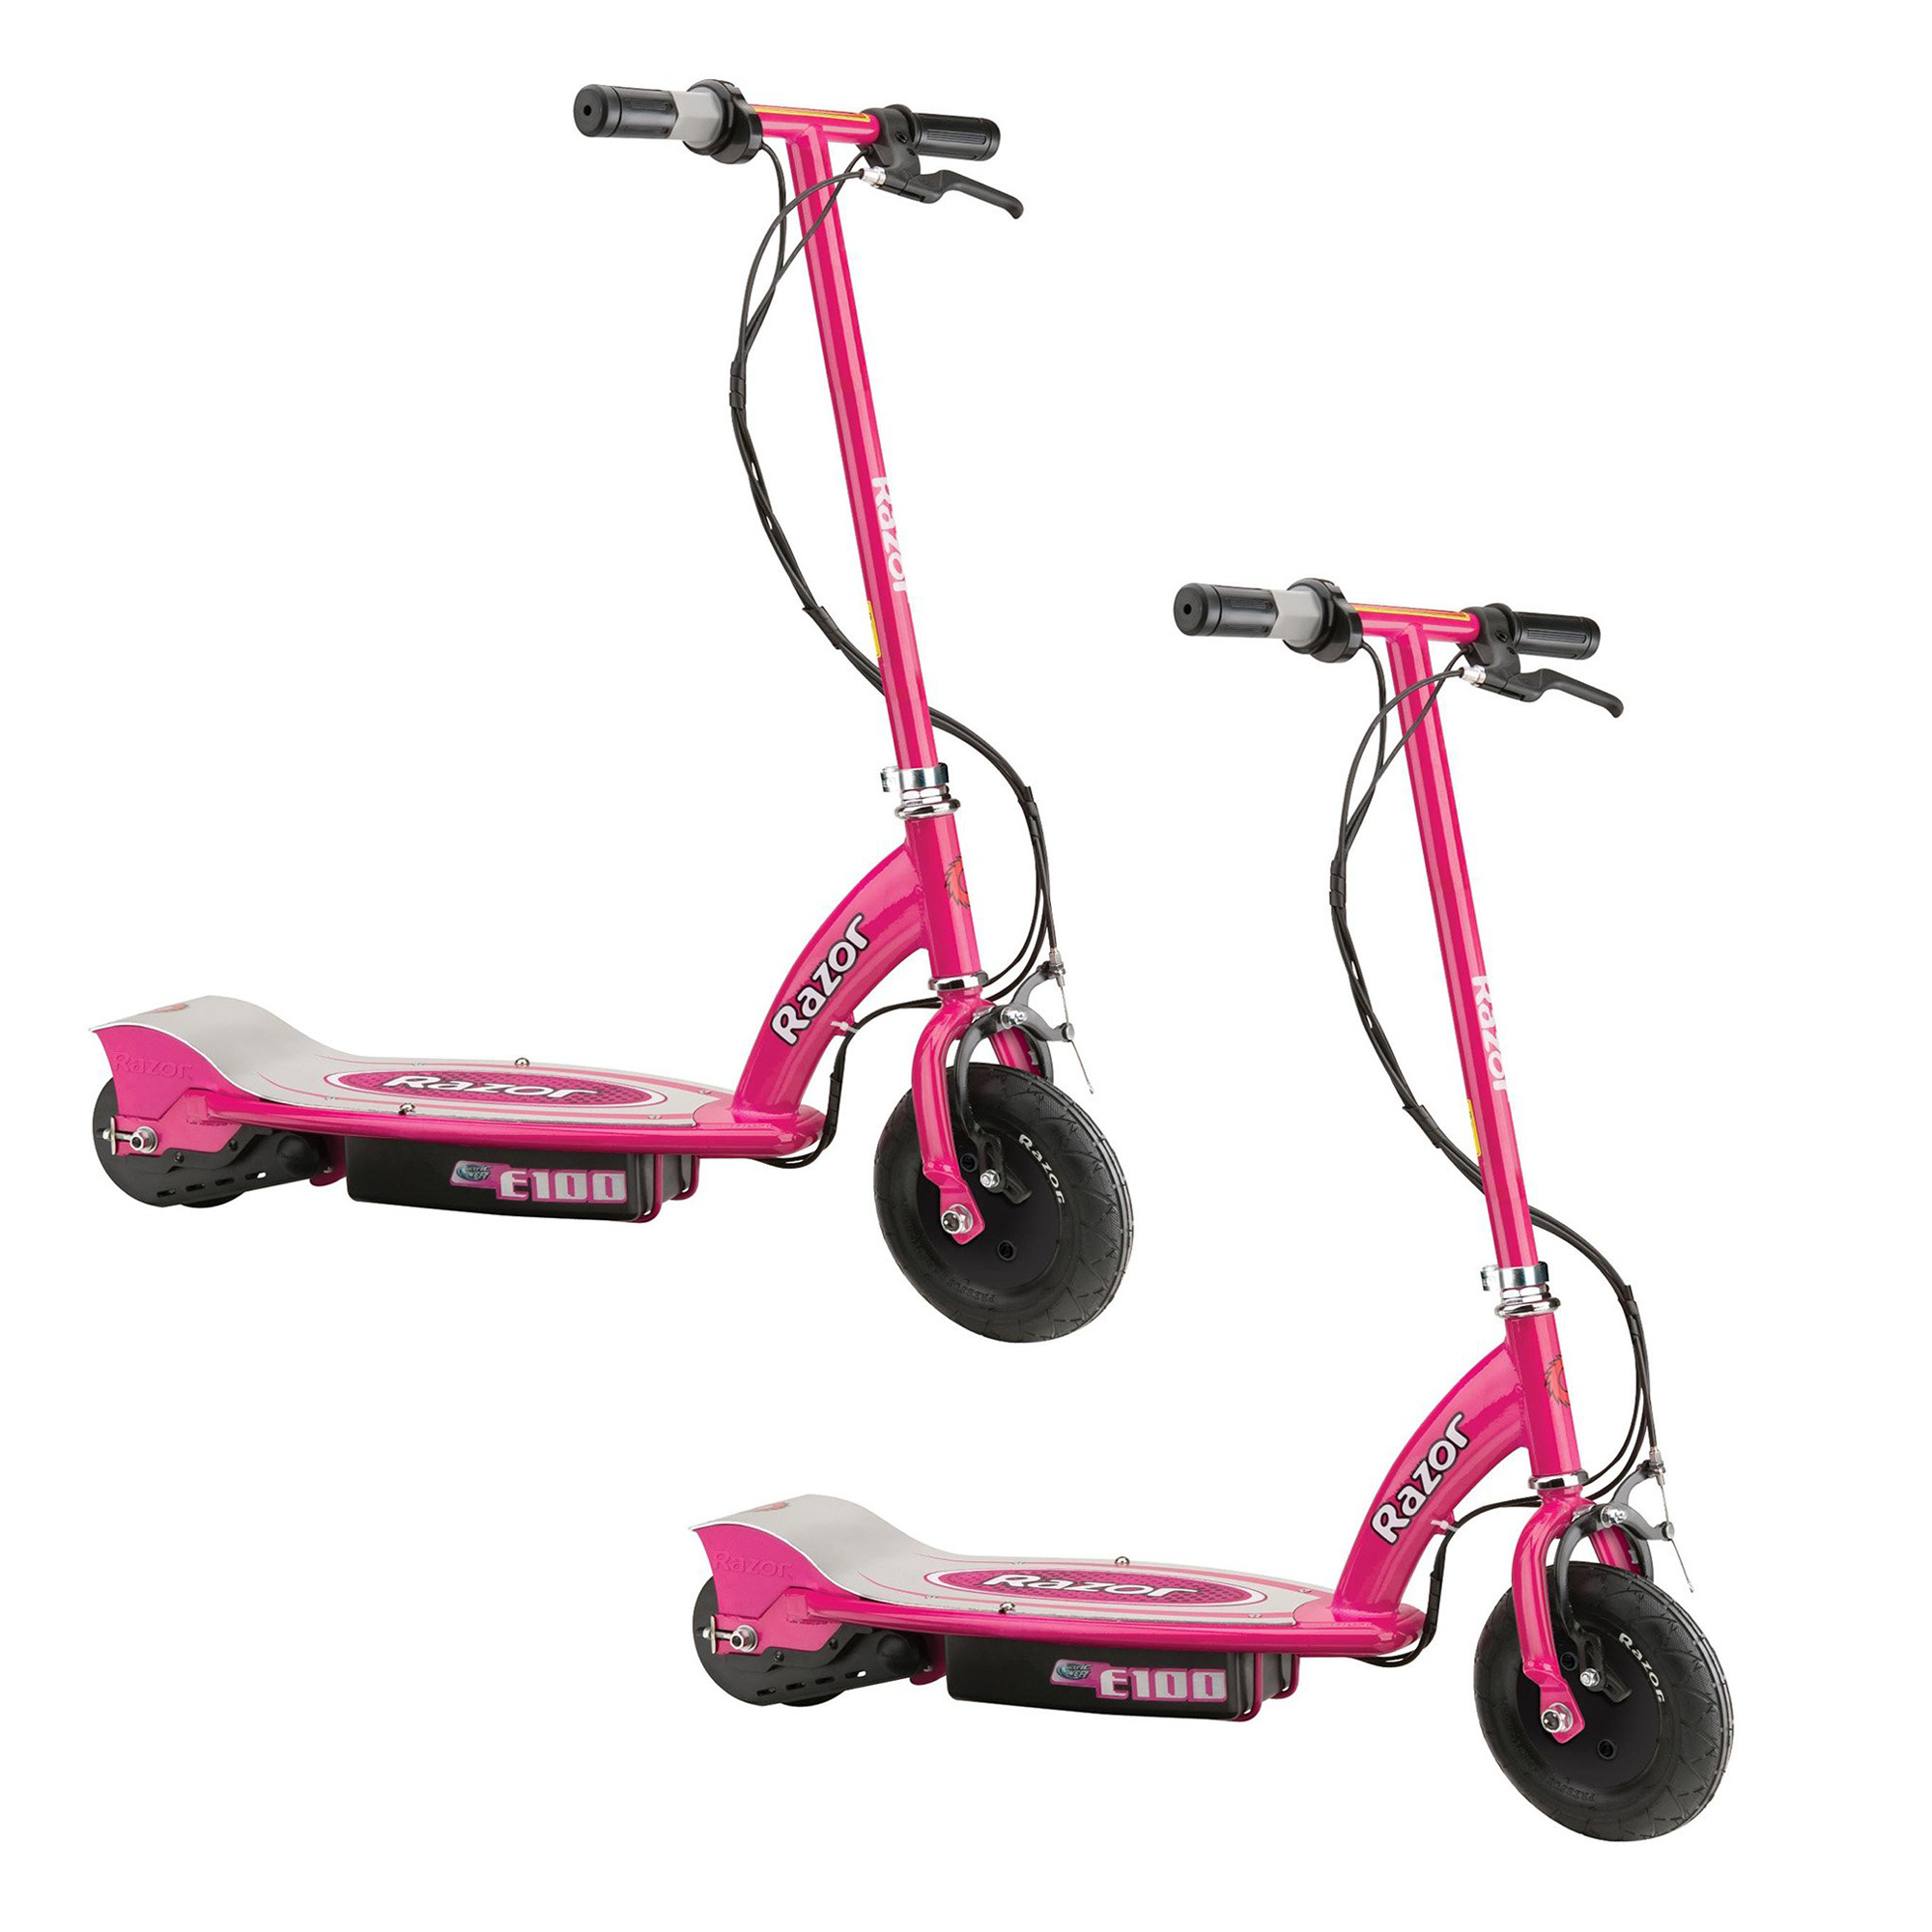 Razor E100 Motorized Electric Powered Ride On Kids Toy Scooter, Pink (2 Pack)